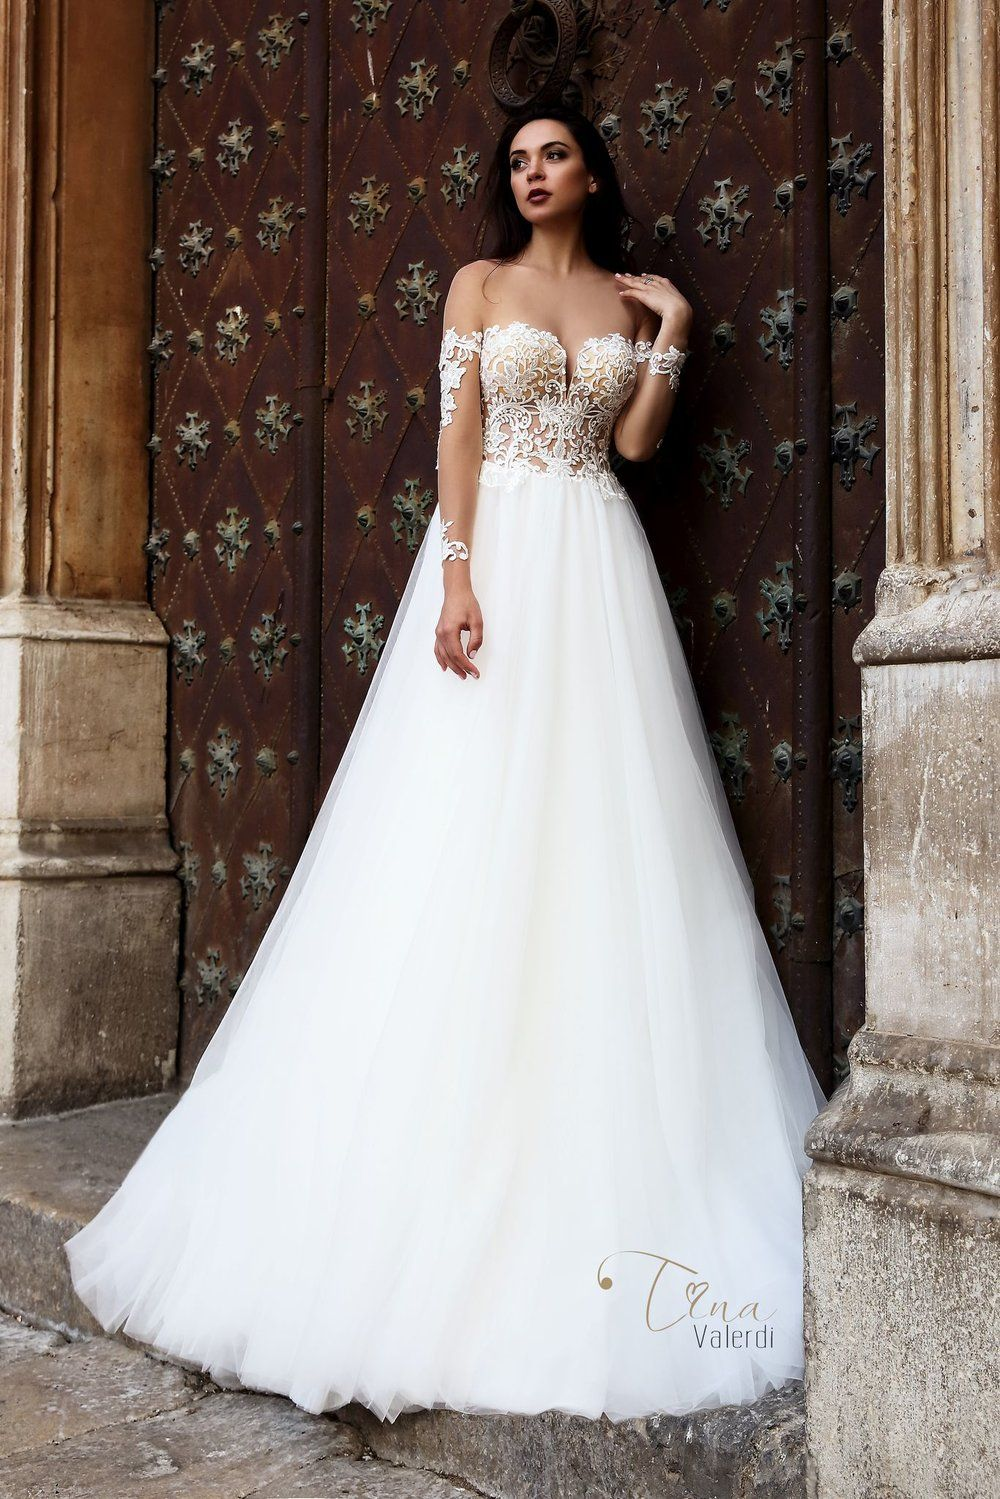 DIANA wedding Dress By TINA VALERDI Váy cưới